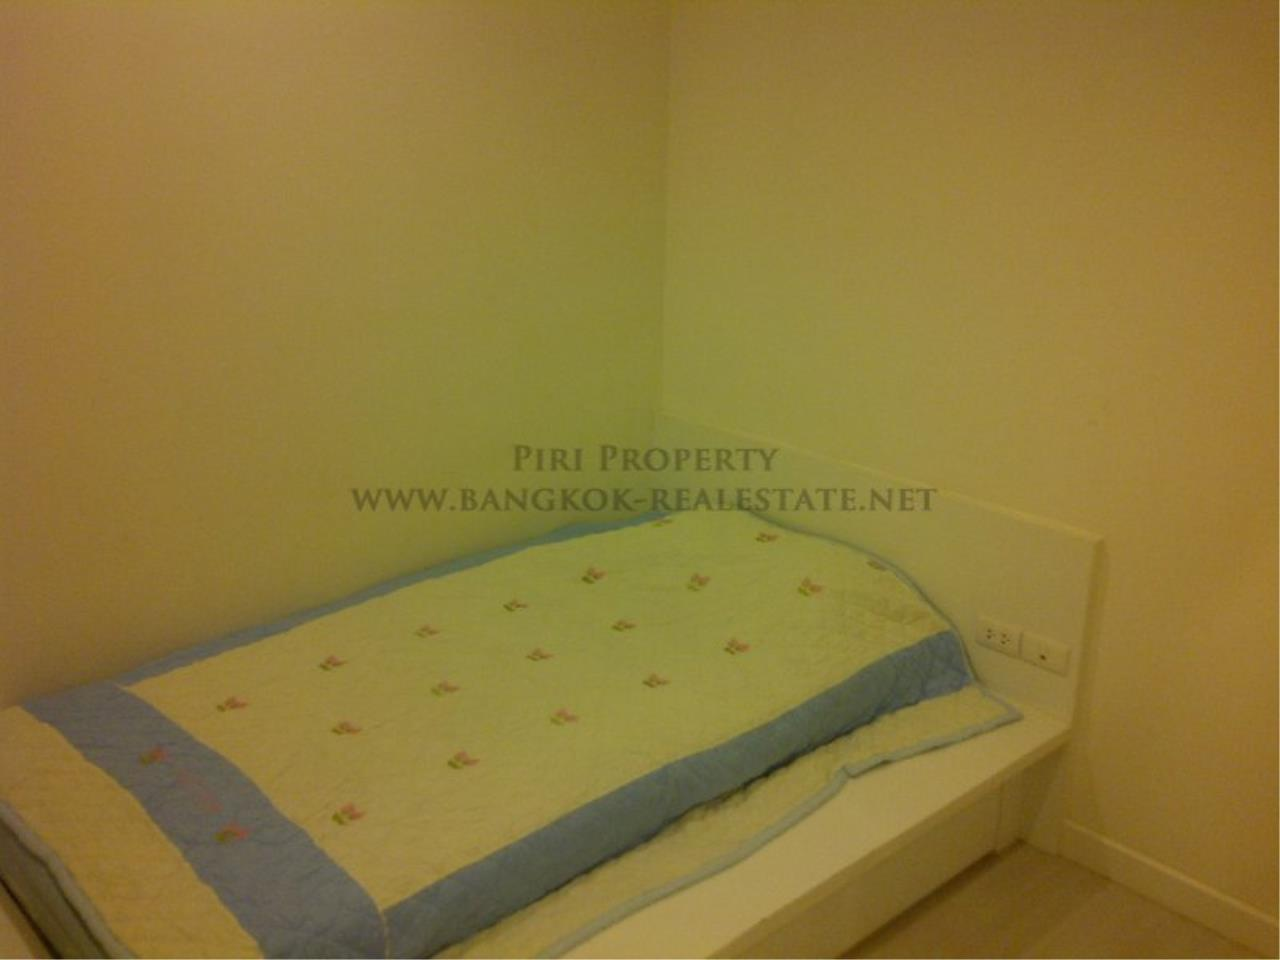 Piri Property Agency's The Room Lad Prao - 2 Bedroom on High Floor - 61SQM - 25K 5